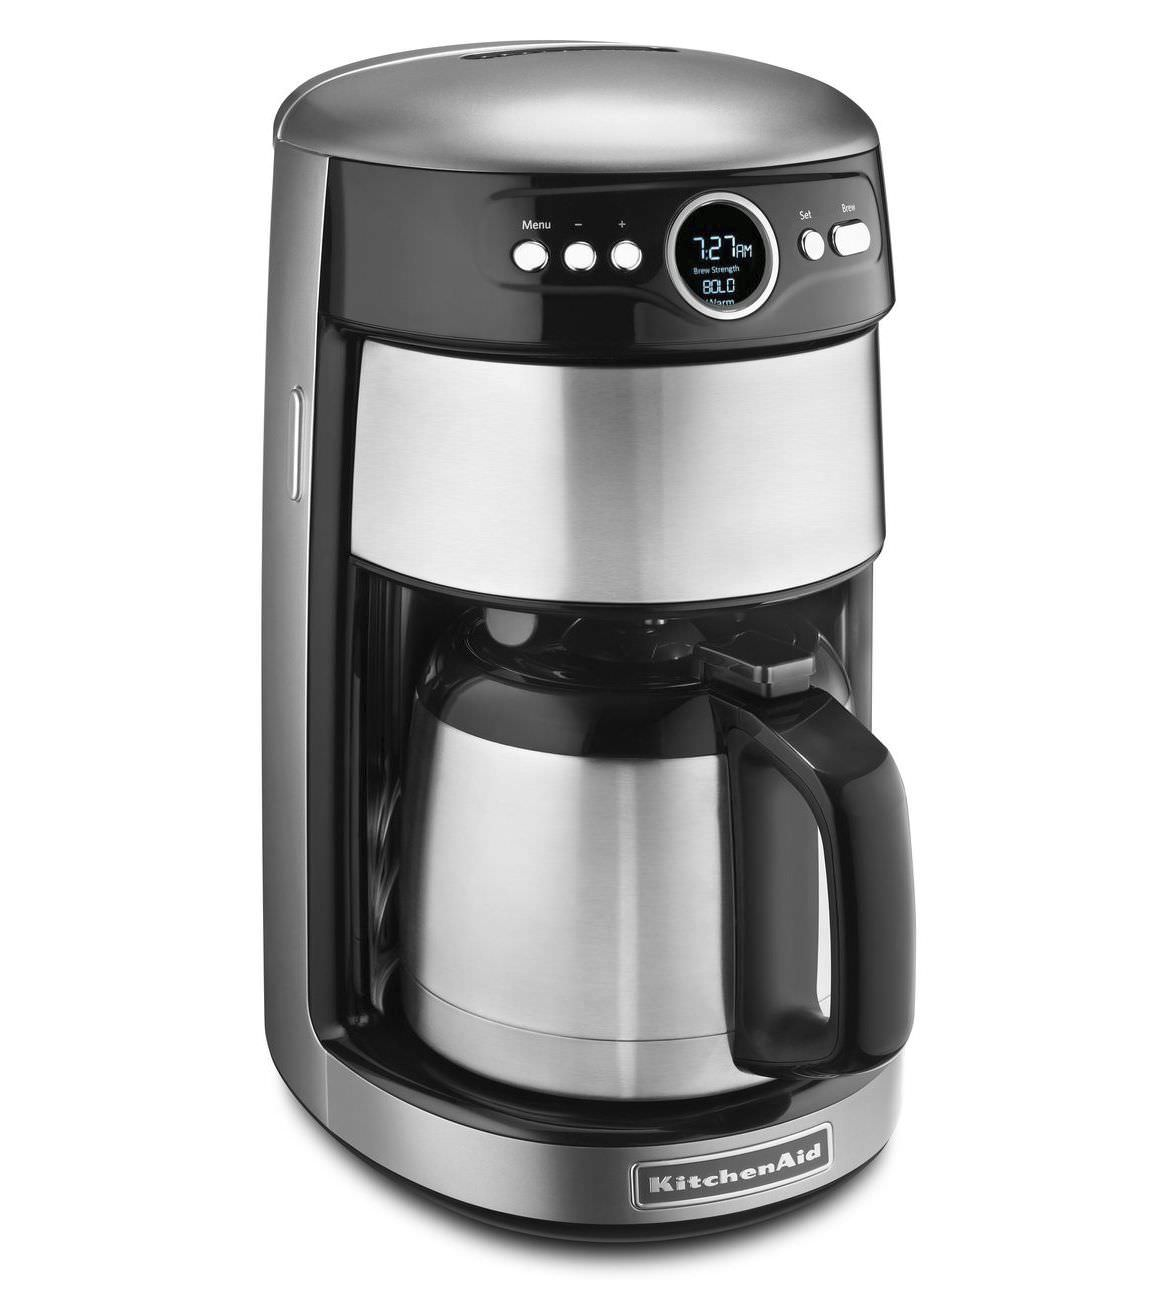 Great ... Automatic KCM1203CU KitchenAid Filter Coffee Machine / Automatic    KCM1203CU